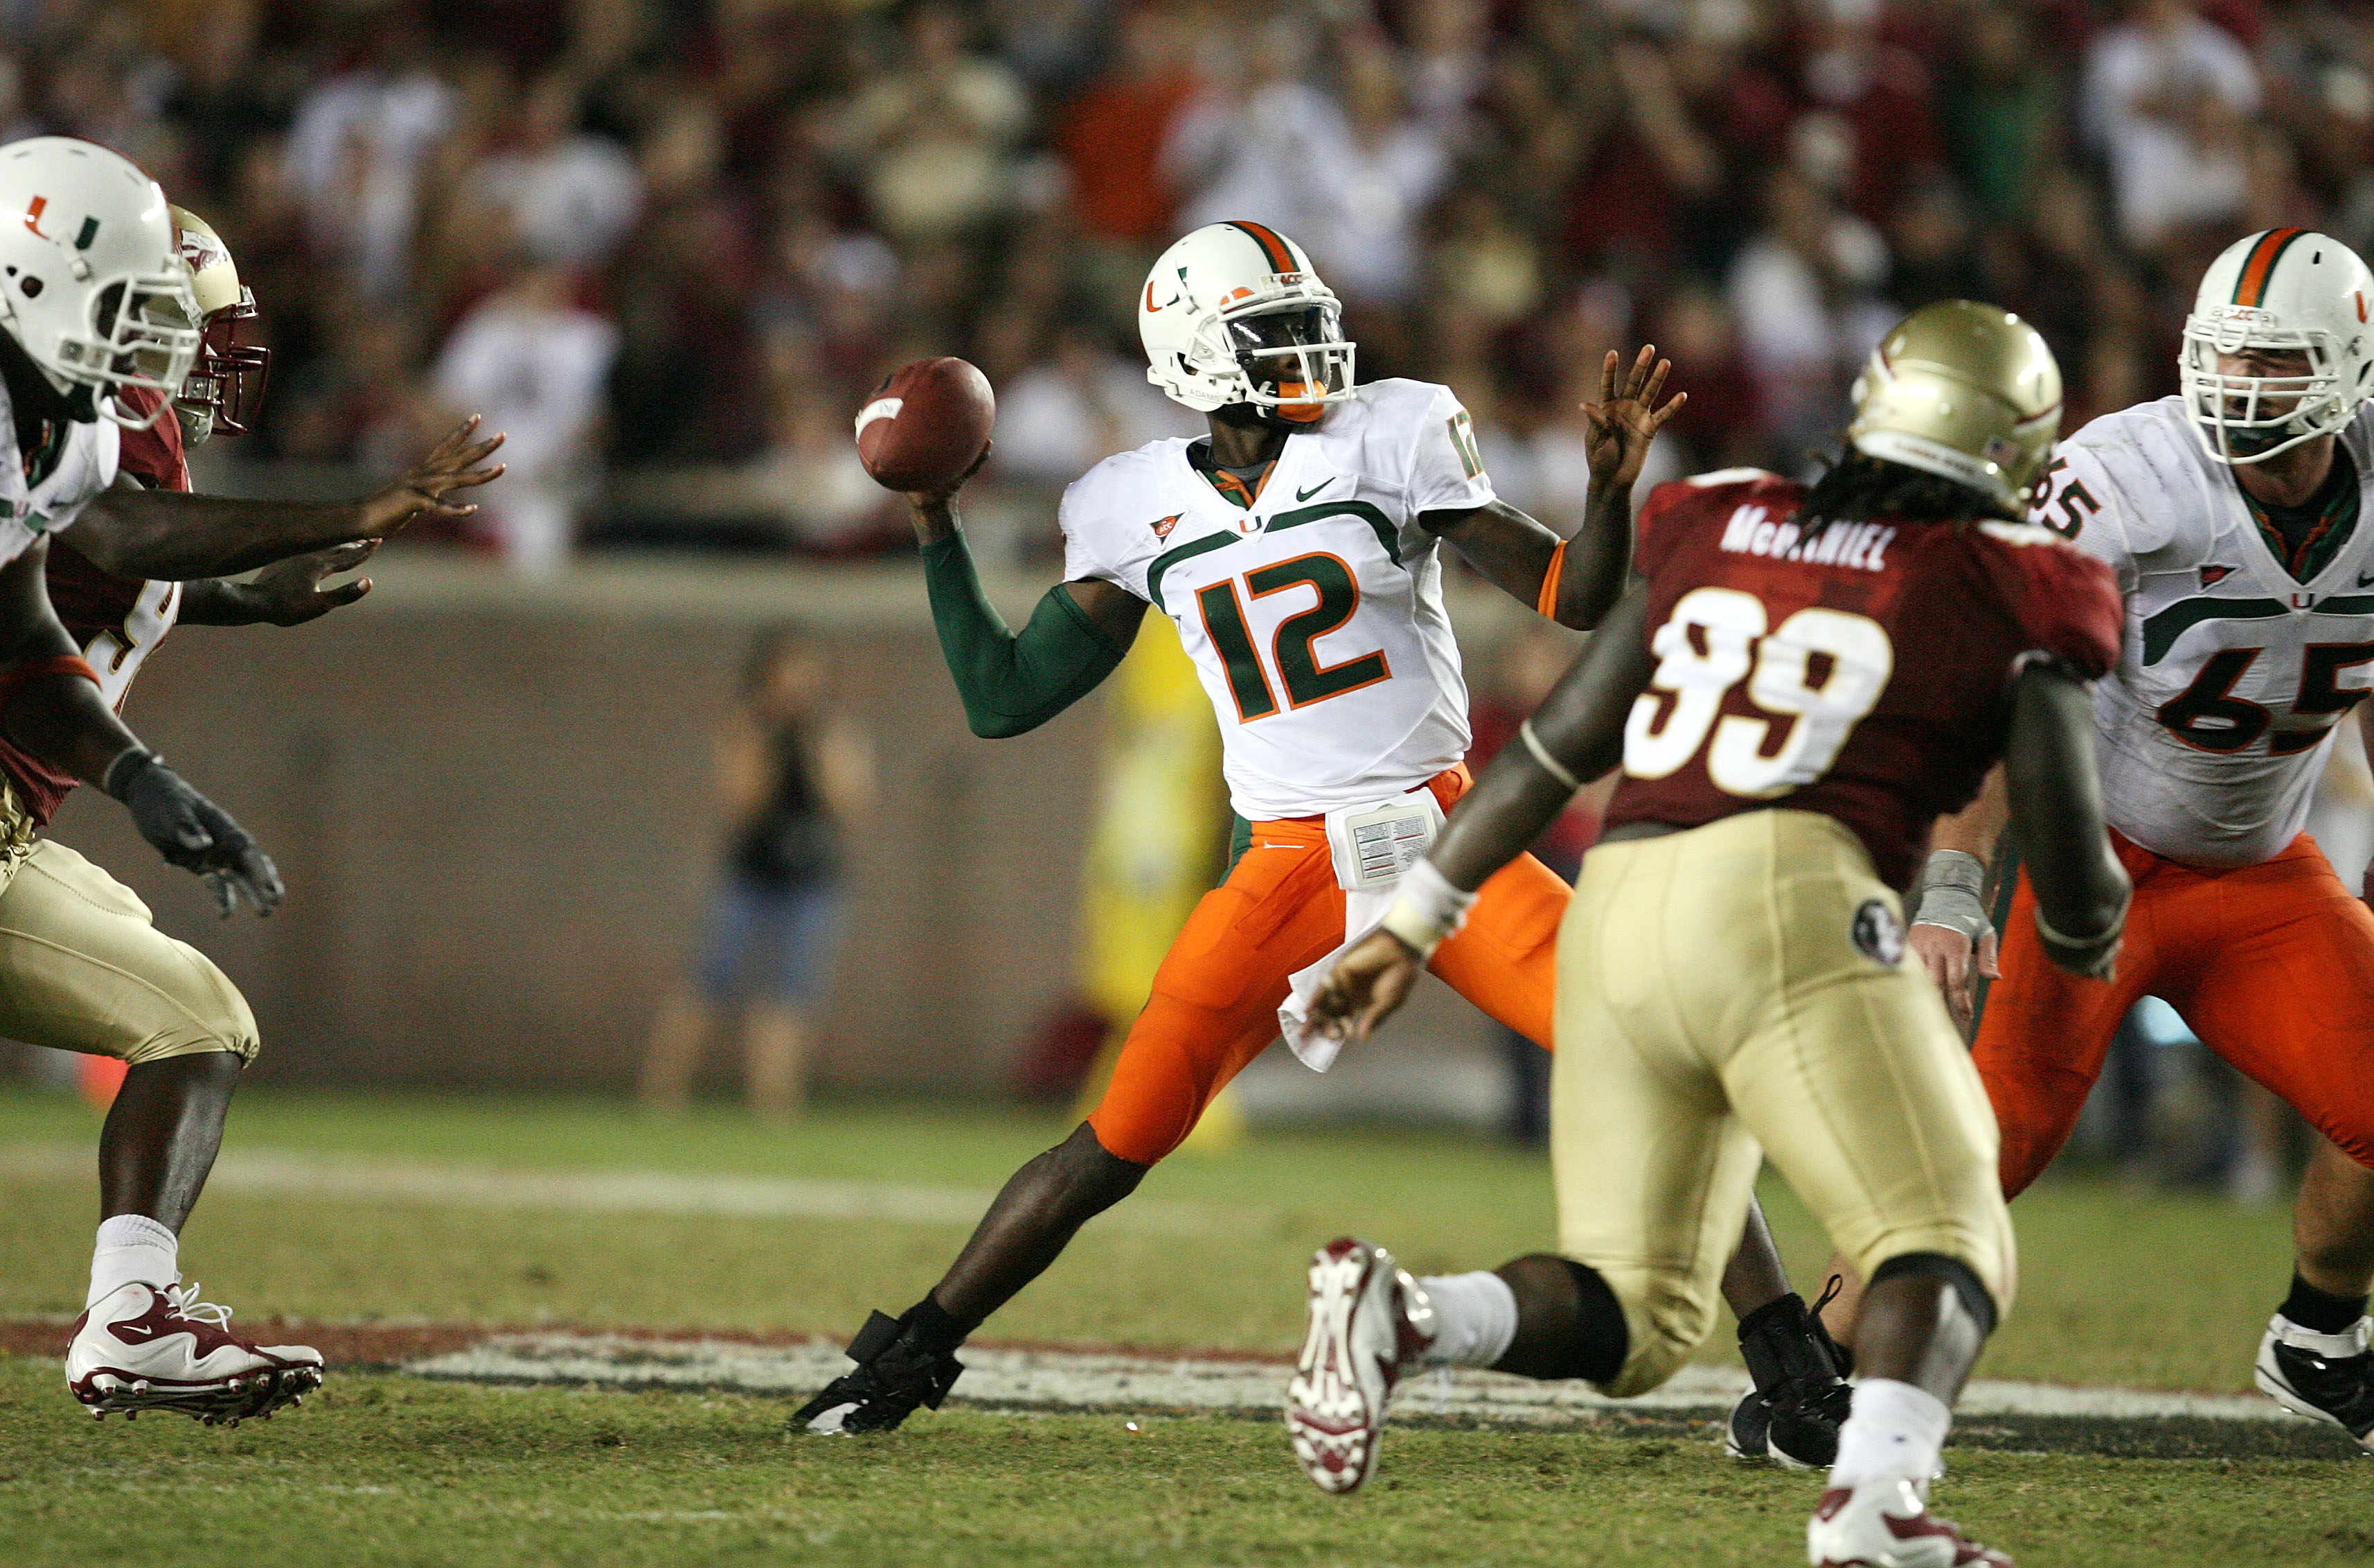 TALLAHASSEE, FL - SEPTEMBER 07:  Quarterback Jacory Harris #12 of the Miami Hurricanes throws a touchdown pass in the fourth quarter to Graig Cooper #2 against the Florida State Seminoles at Doak Campbell Stadium on September 7, 2009 in Tallahassee, Flori